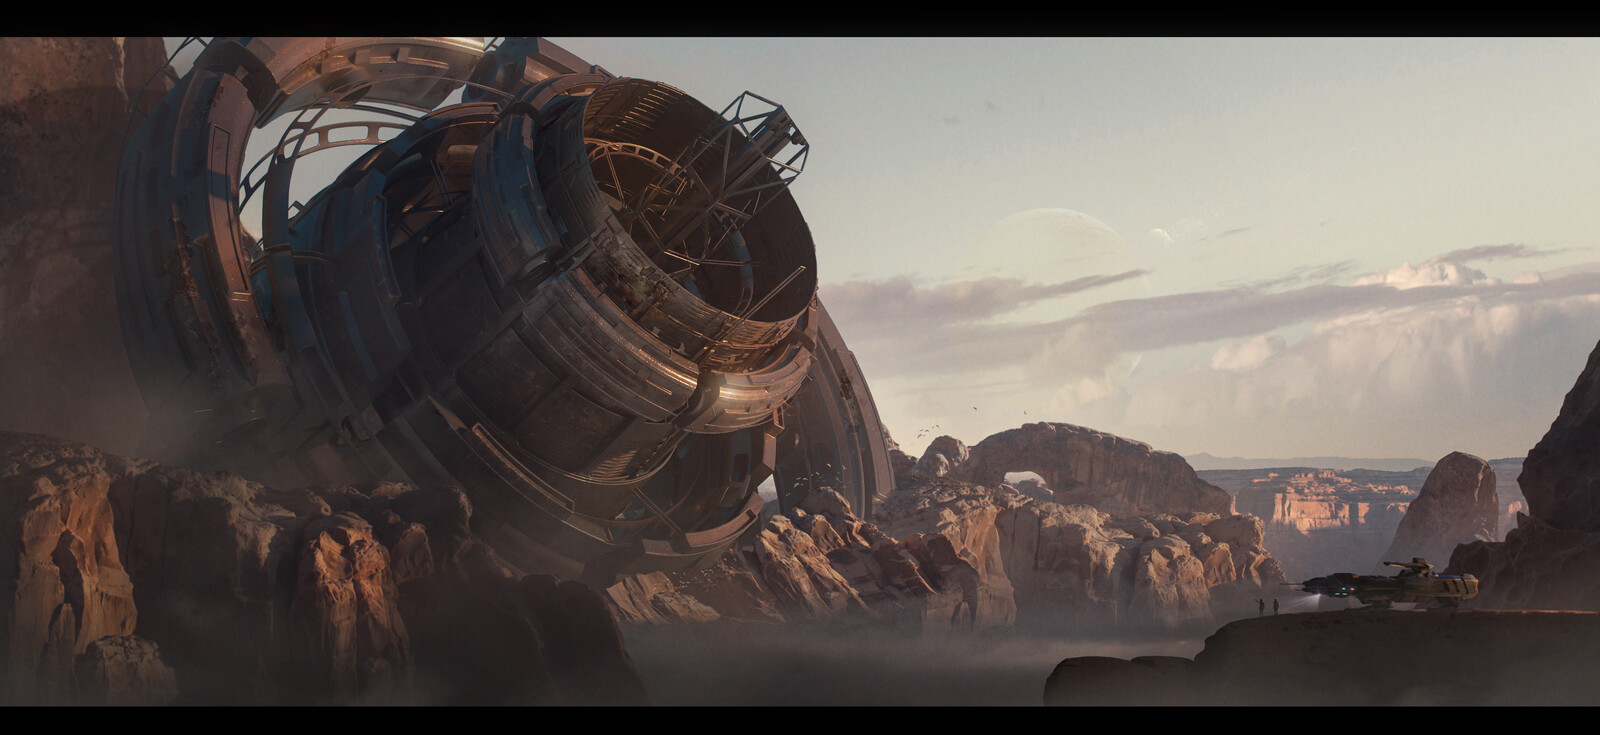 Ancient sci fi structure